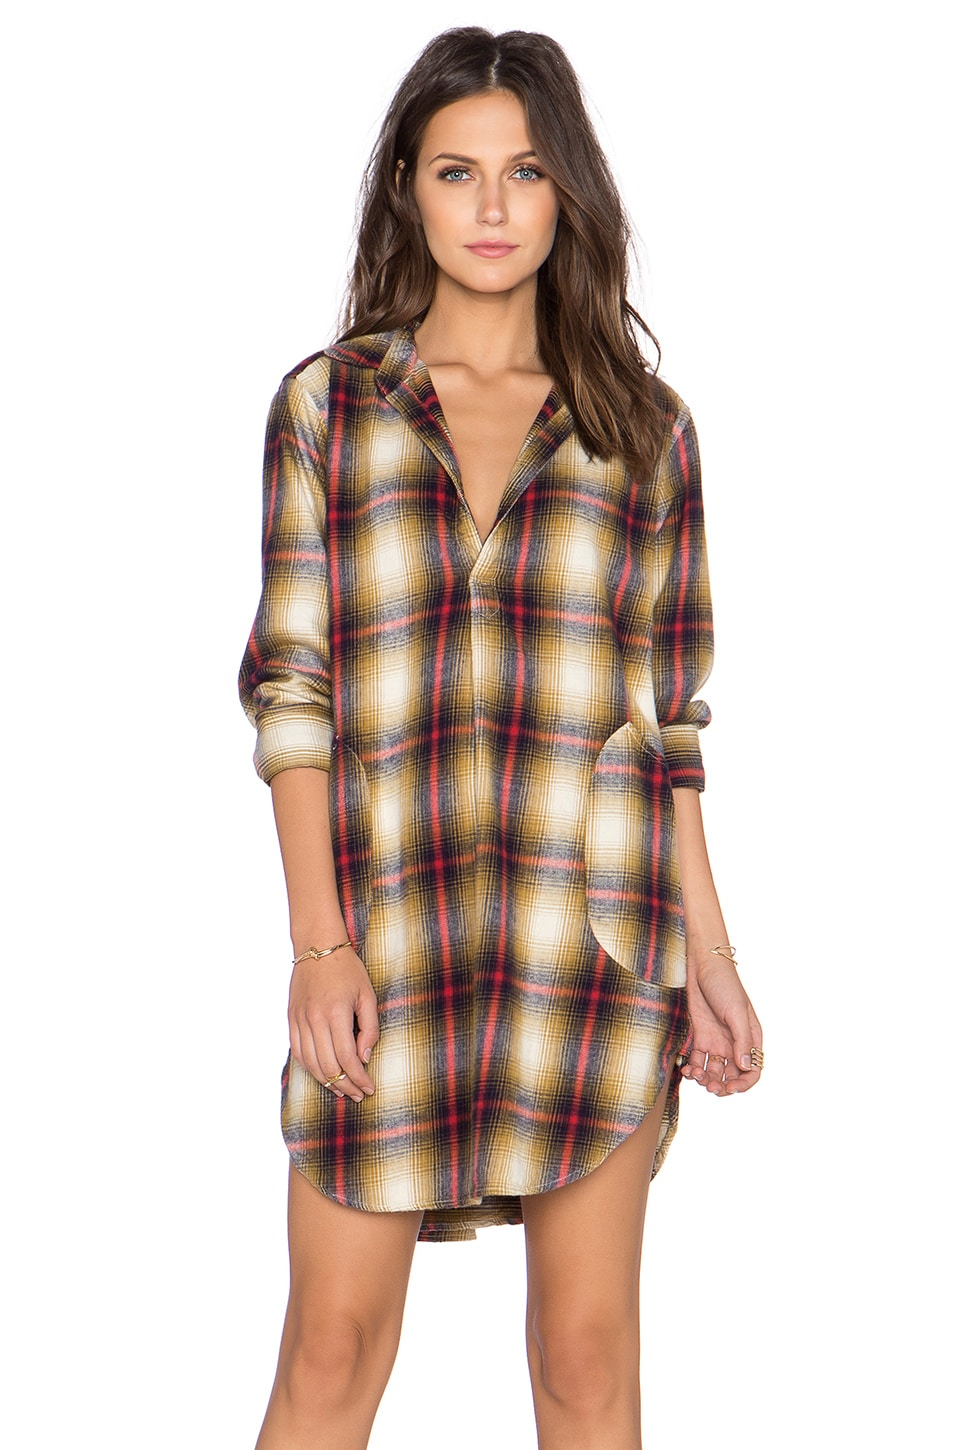 CP SHADES Teton Plaid Tunic in Wash